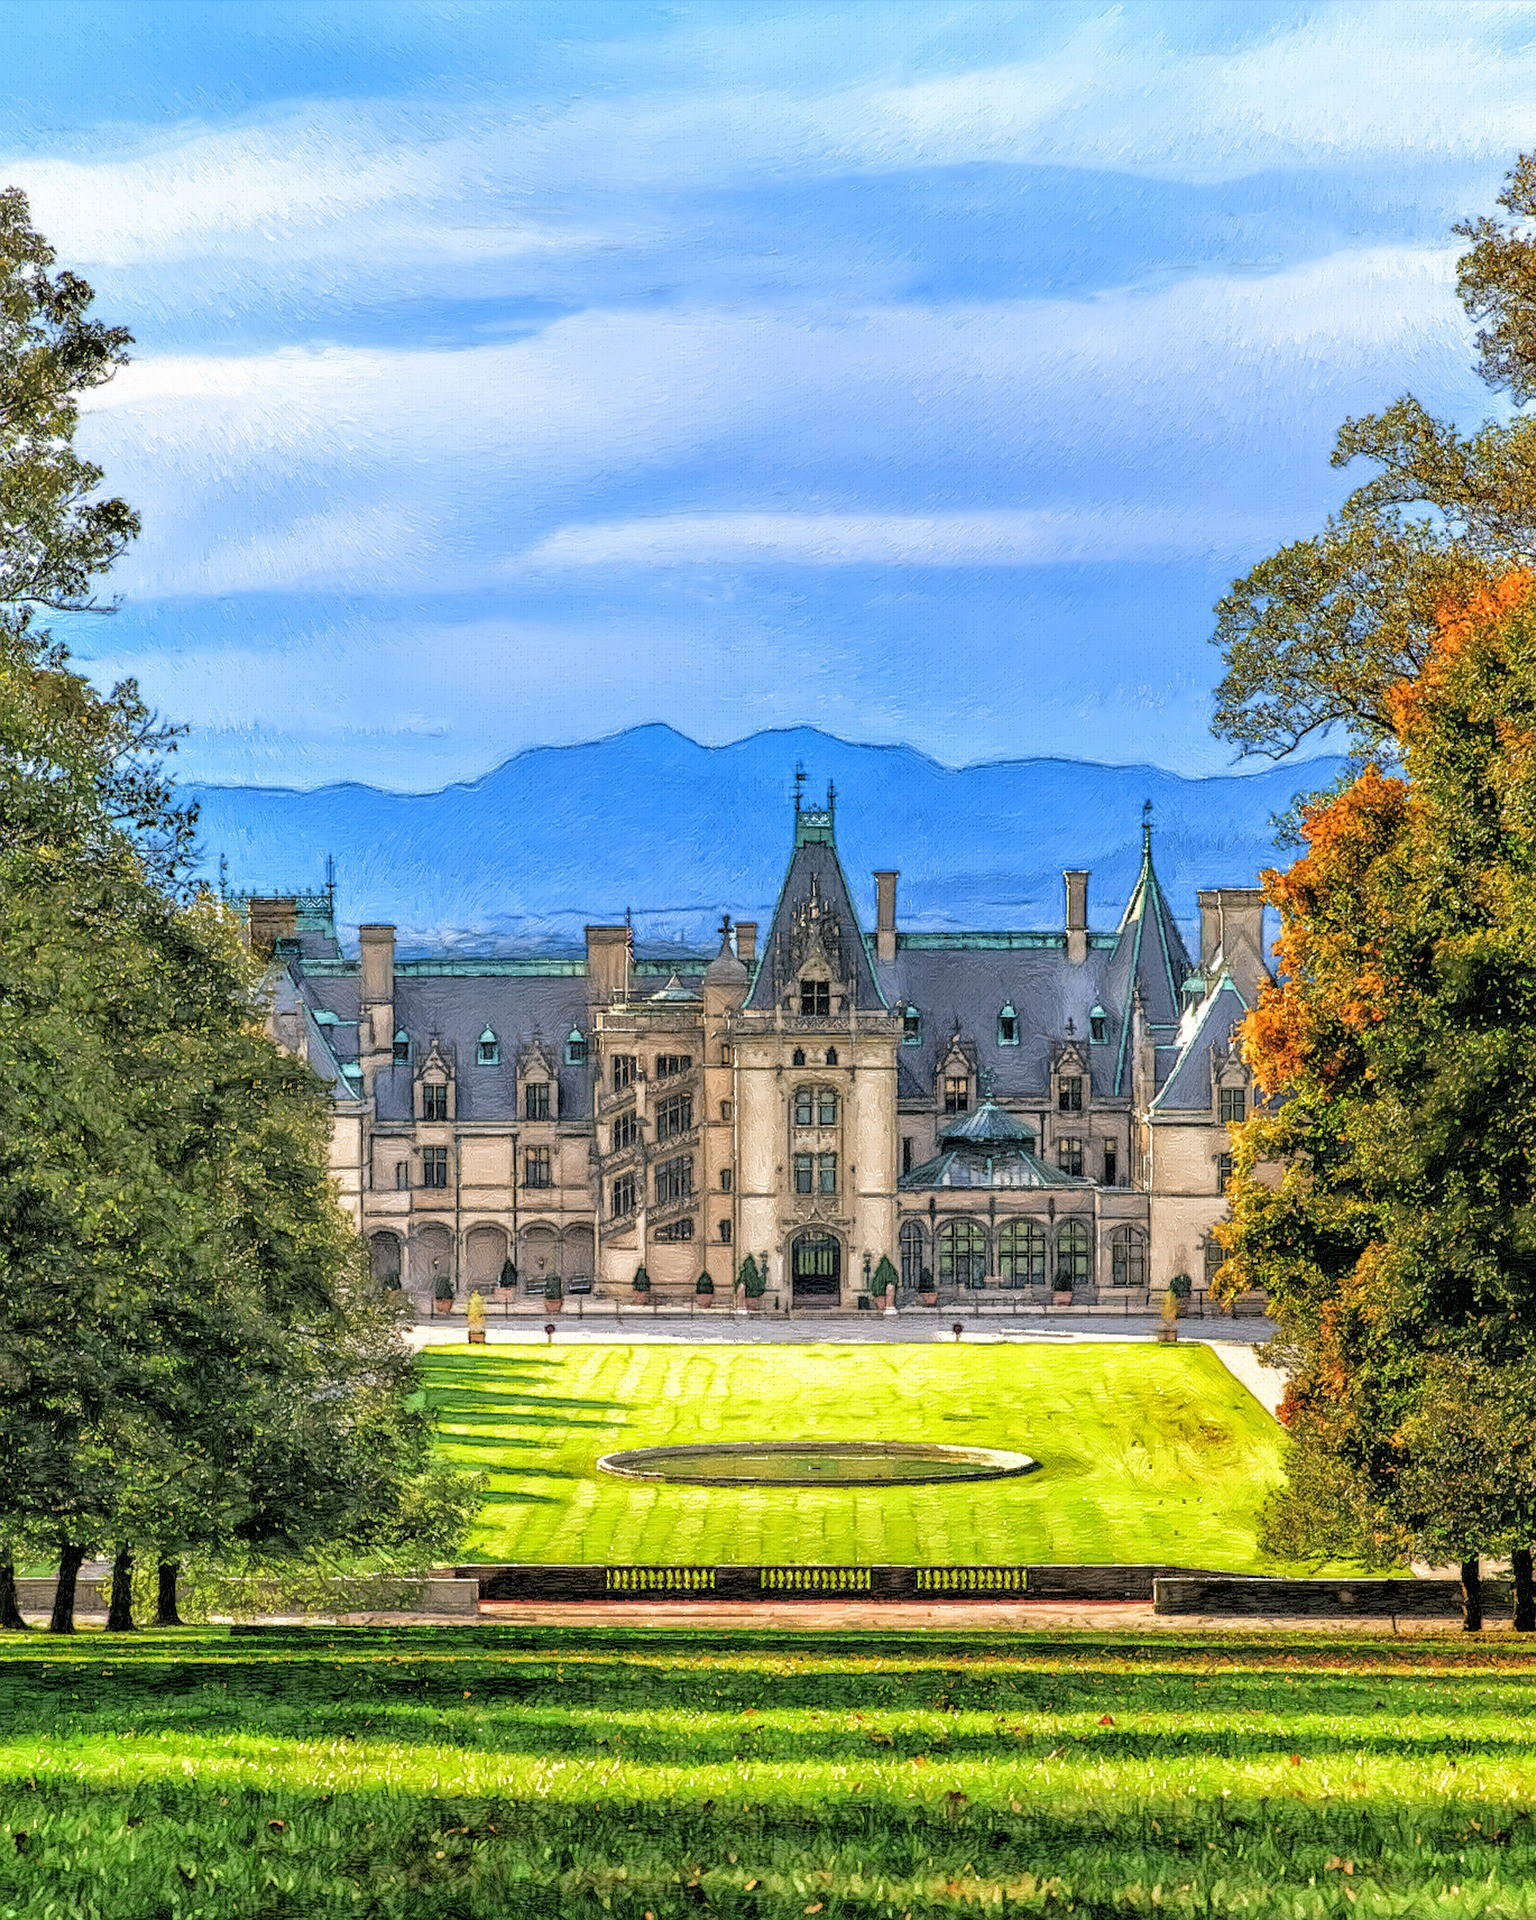 image of the Biltmore Estate in Asheville, NC